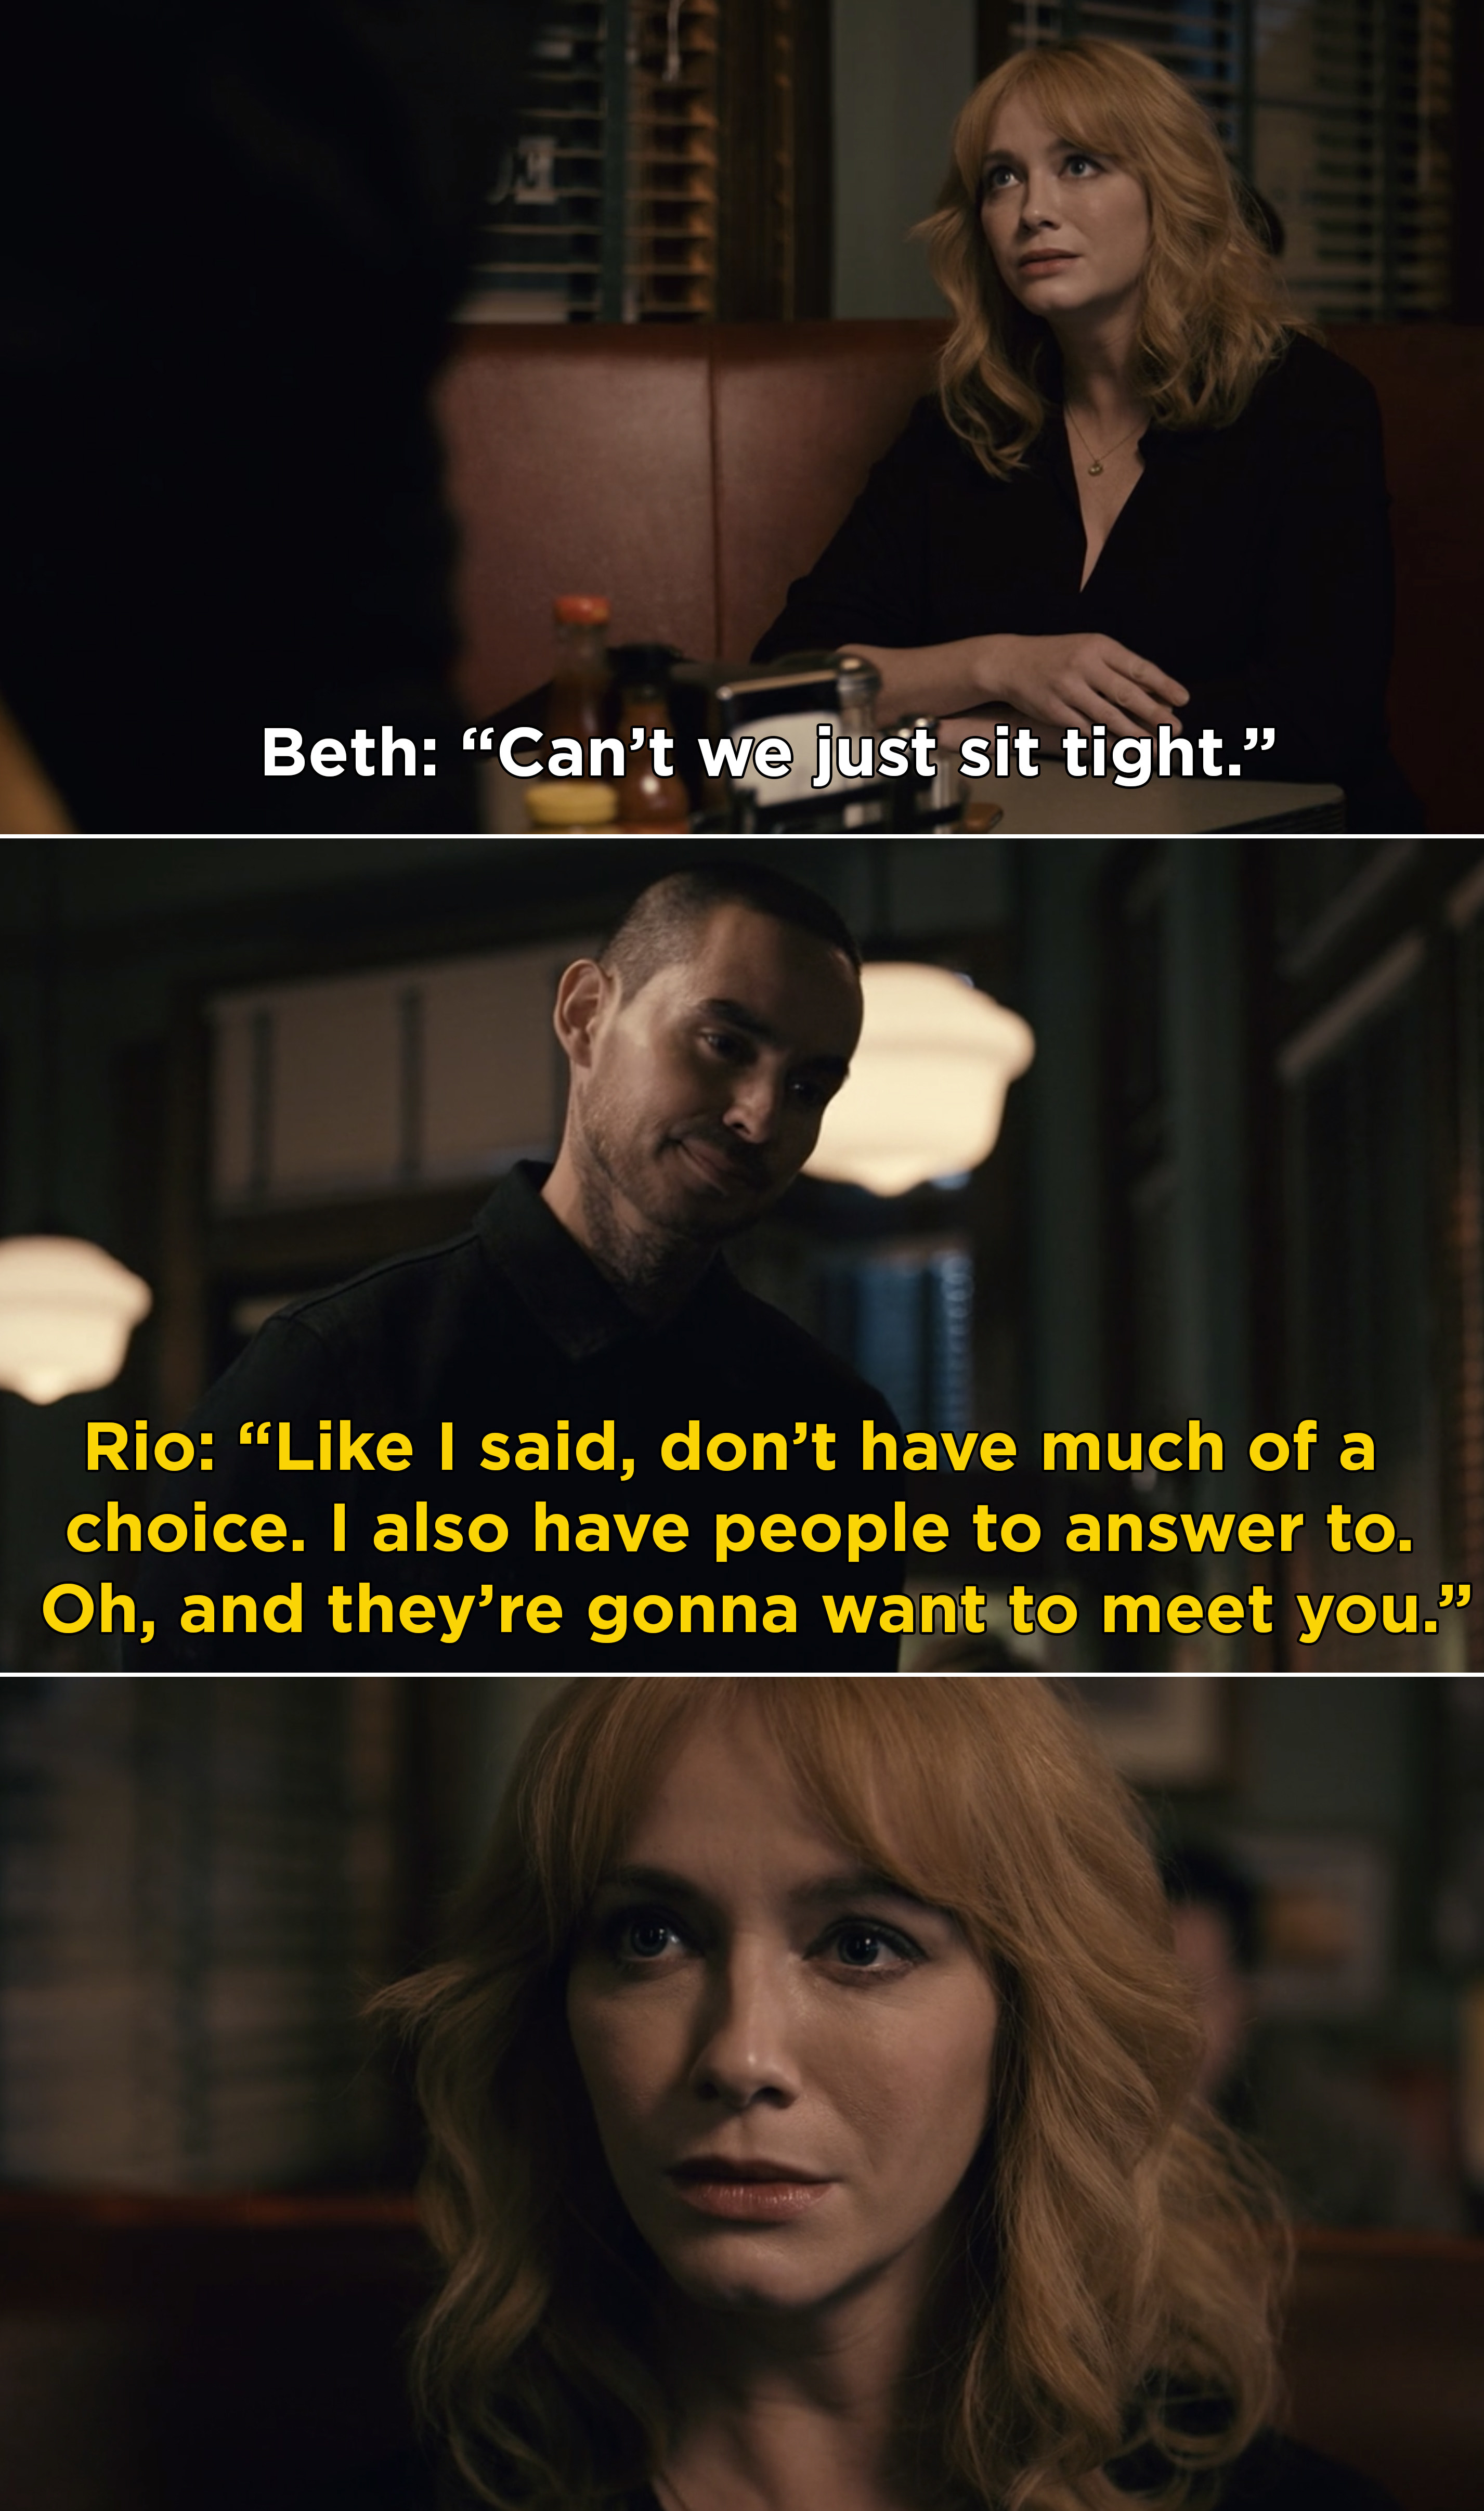 """Rio telling Meth that he has people to answer to and """"they're gonna want to meet you"""""""